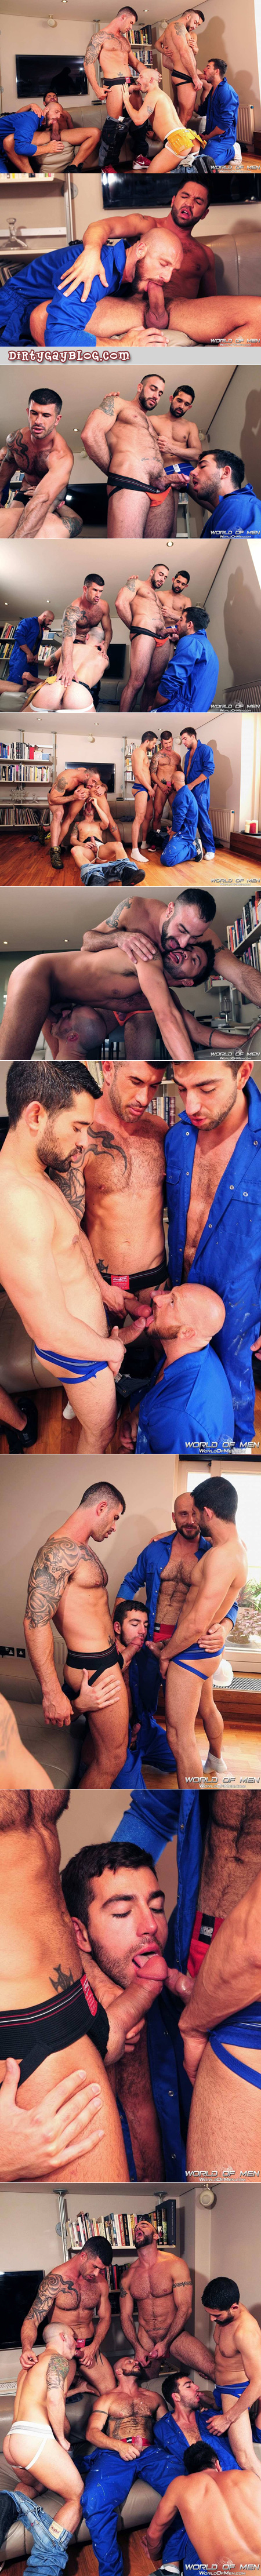 Hairy, muscular construction workers in jockstraps having a gay sex orgy.